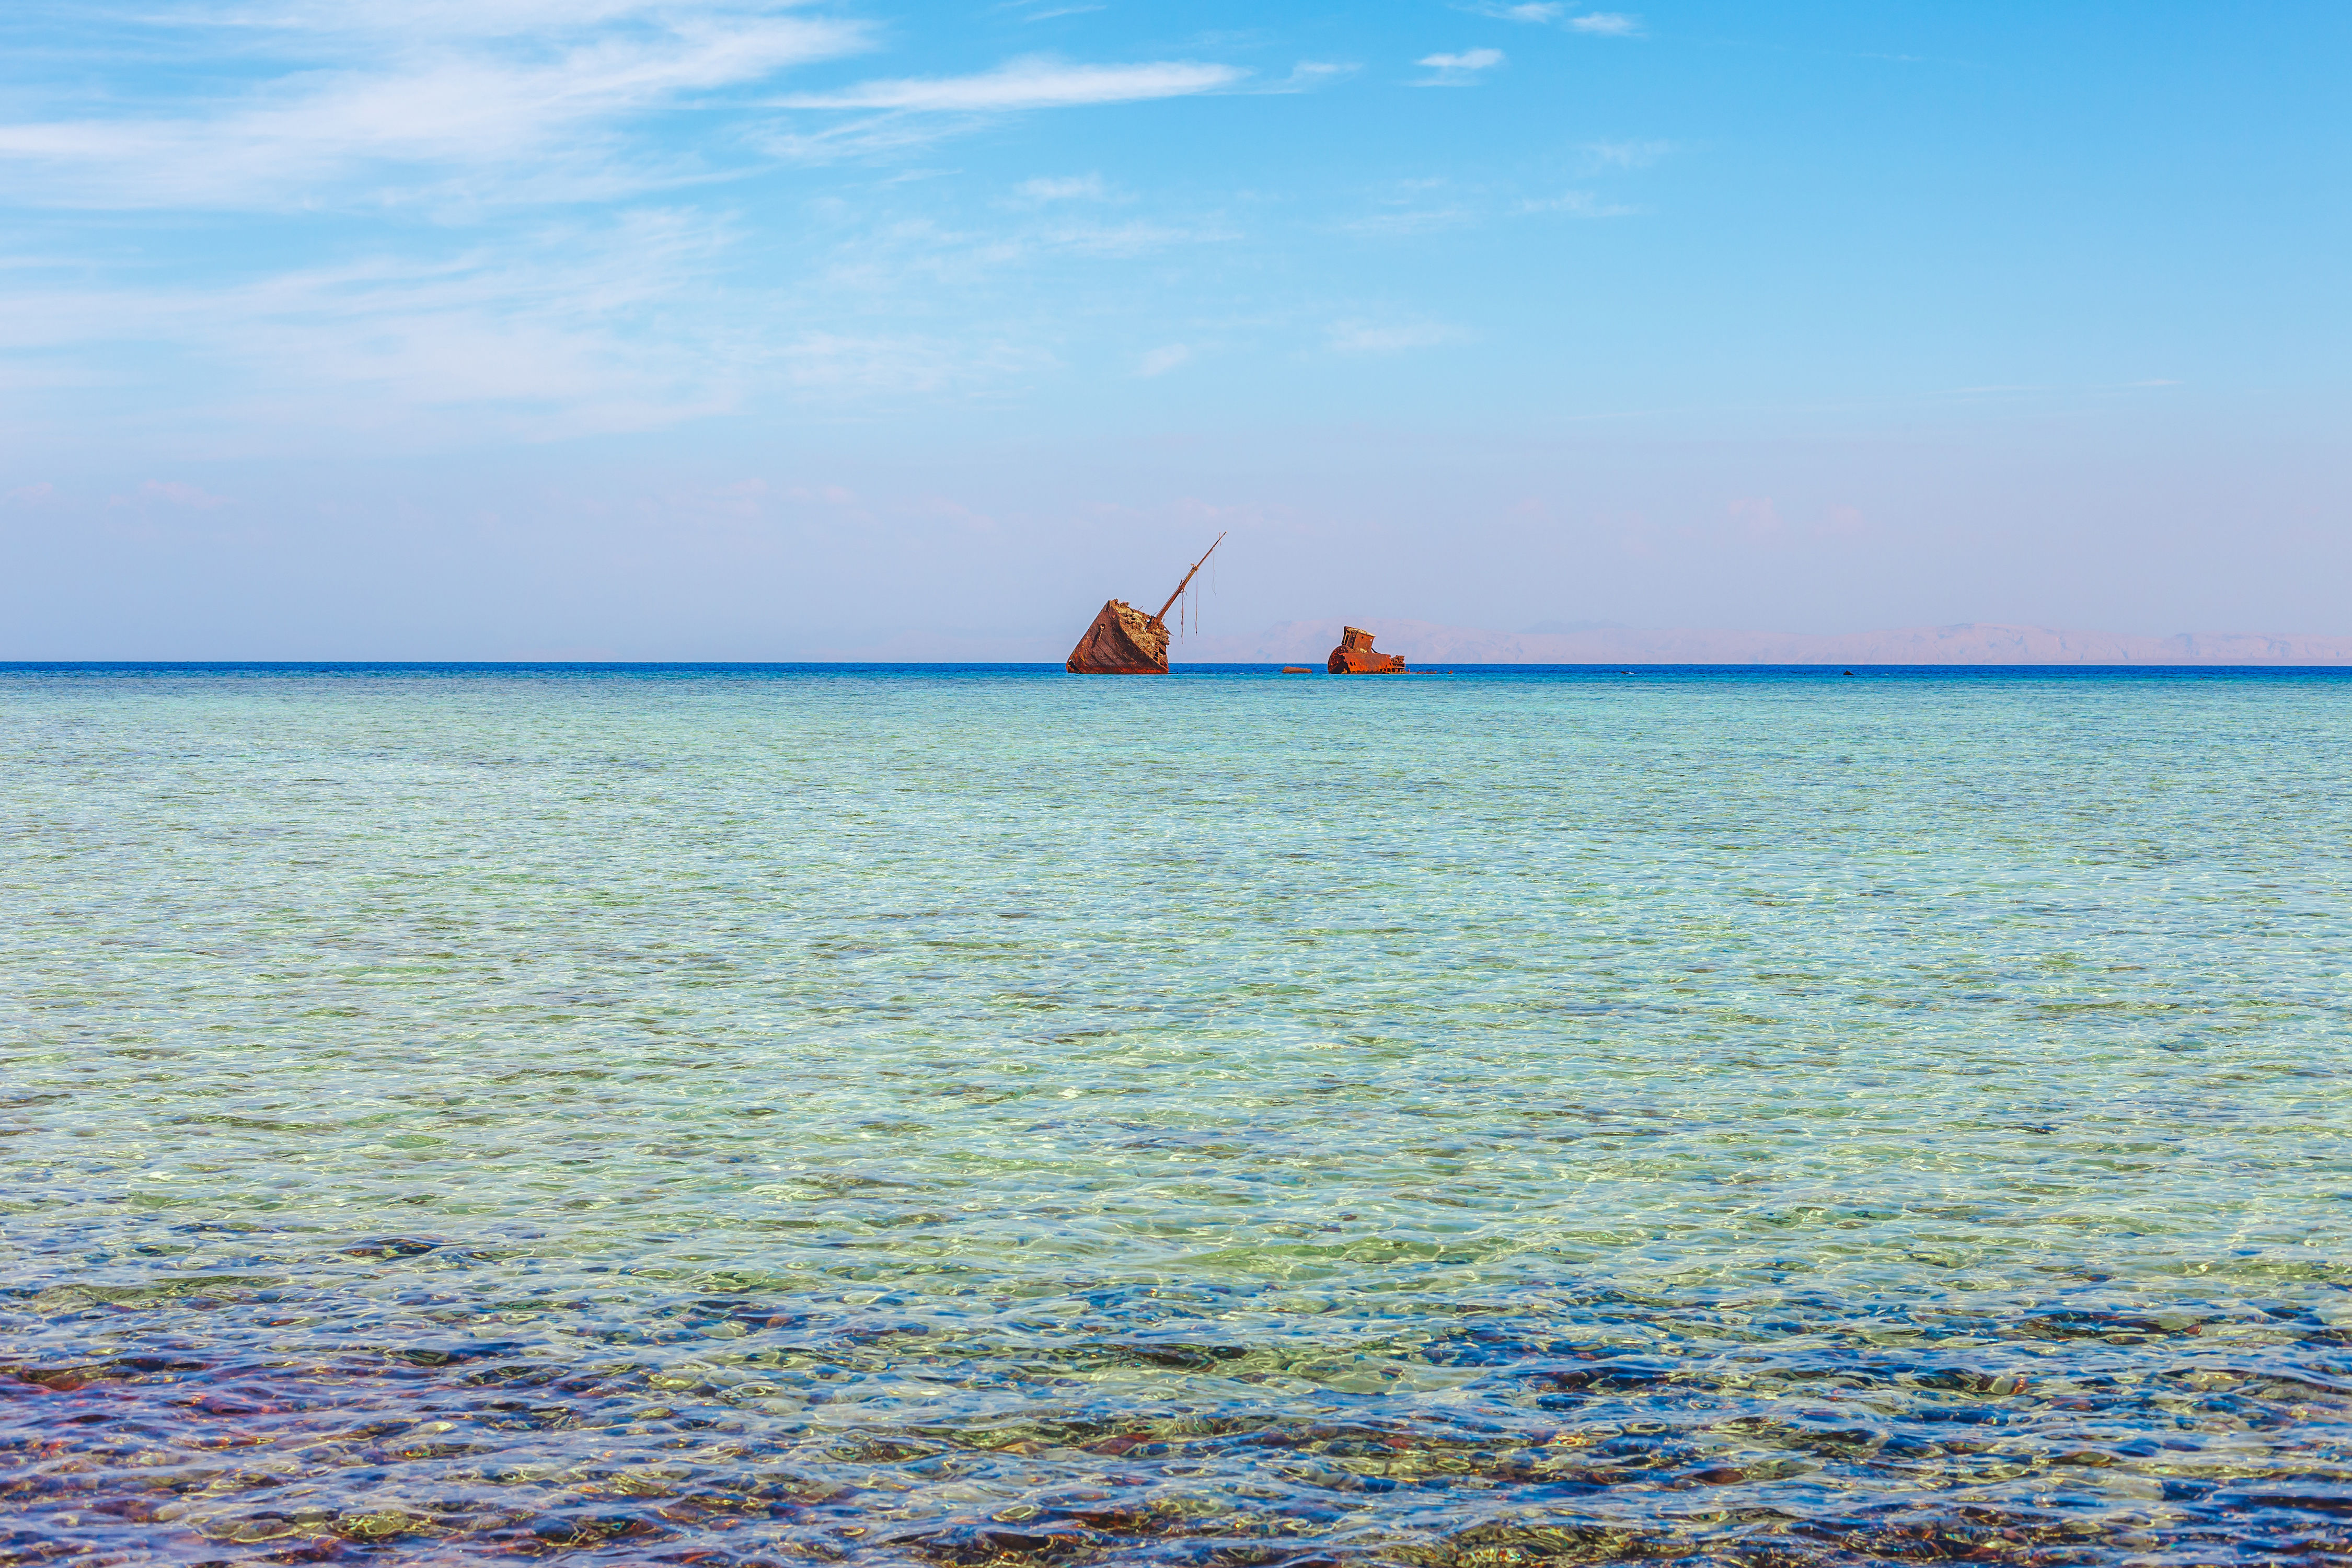 Red Sea coast, reef and wrecked ship in the Nabq National Park.